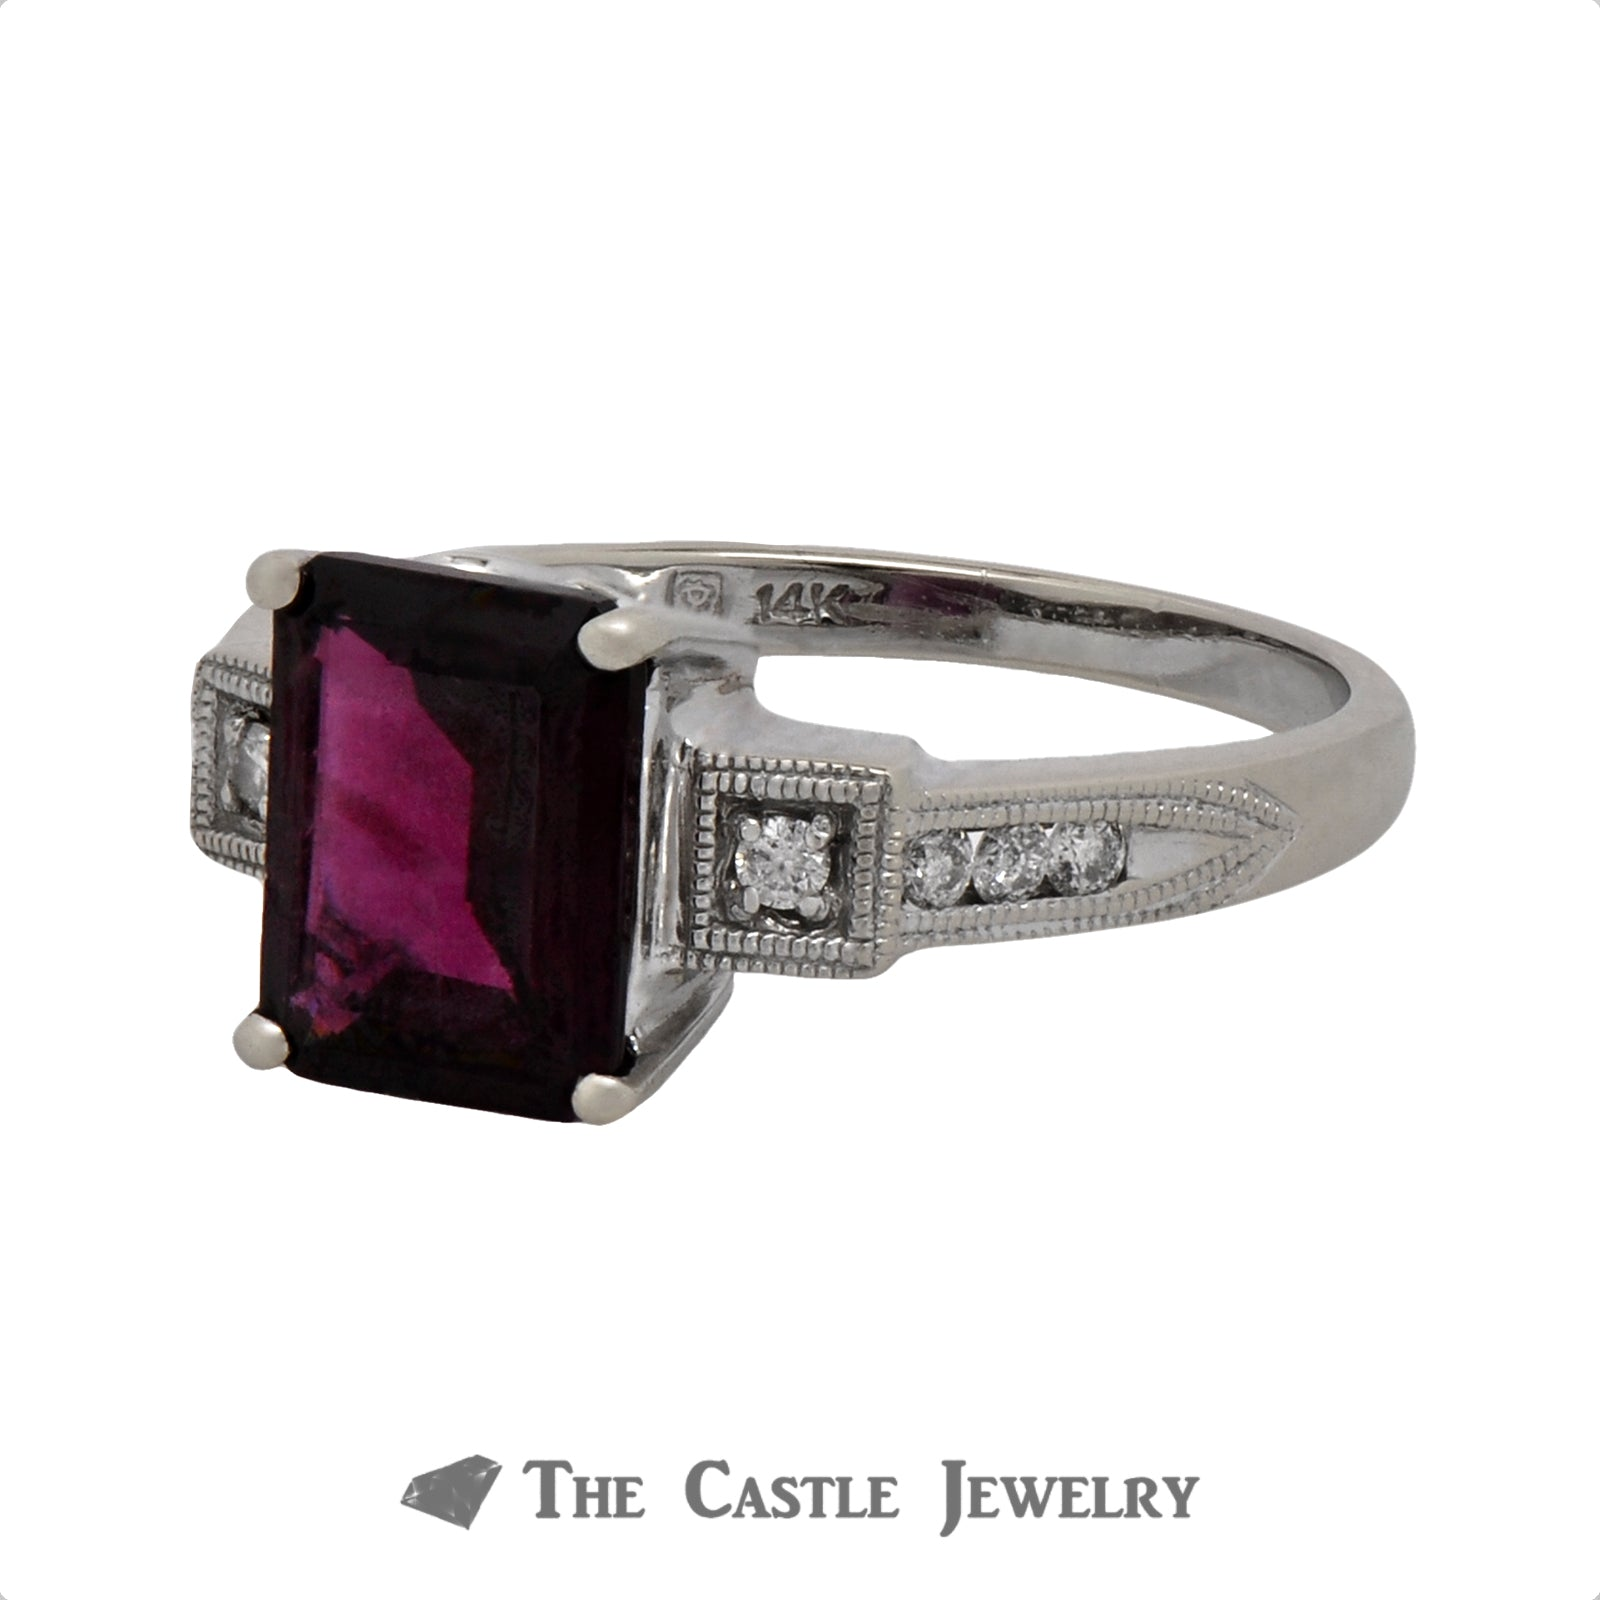 Emerald Cut Rhodolite Garnet Ring with .12cttw Diamond Accents in 14k White Gold-2